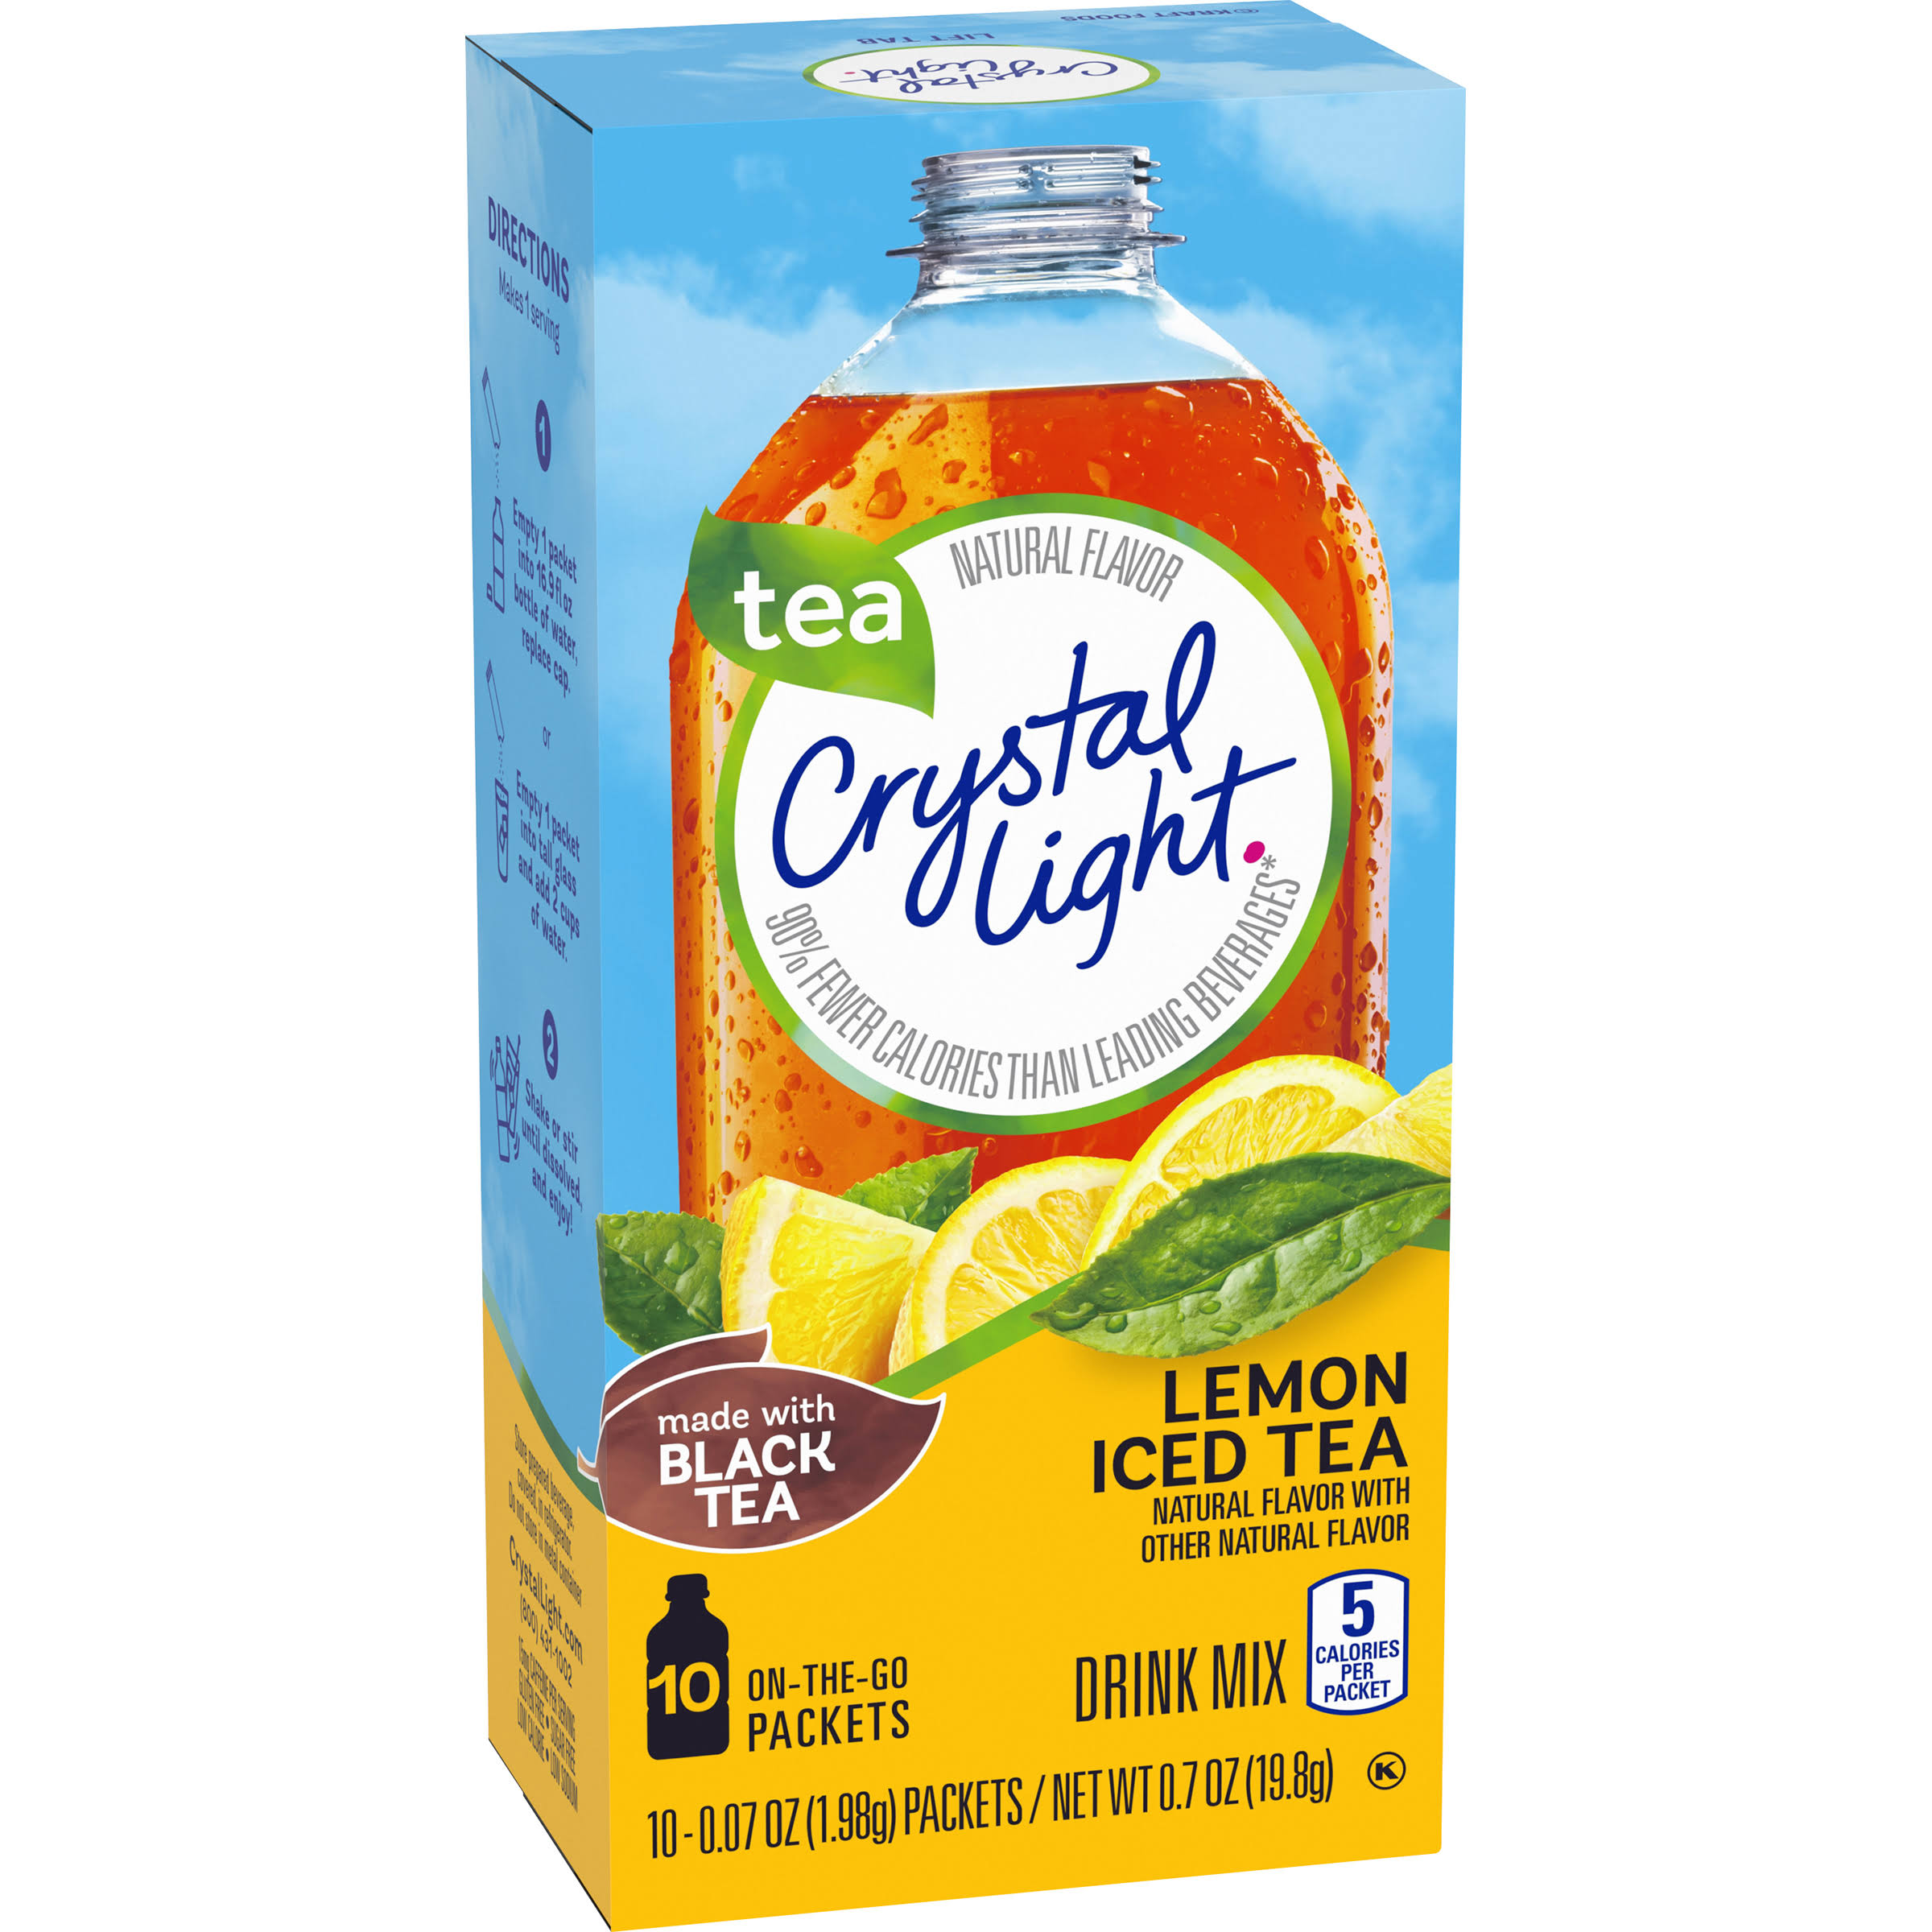 Crystal Light Iced Tea On The Go - Lemon, 10 On-The-Go Packets, 19.8g